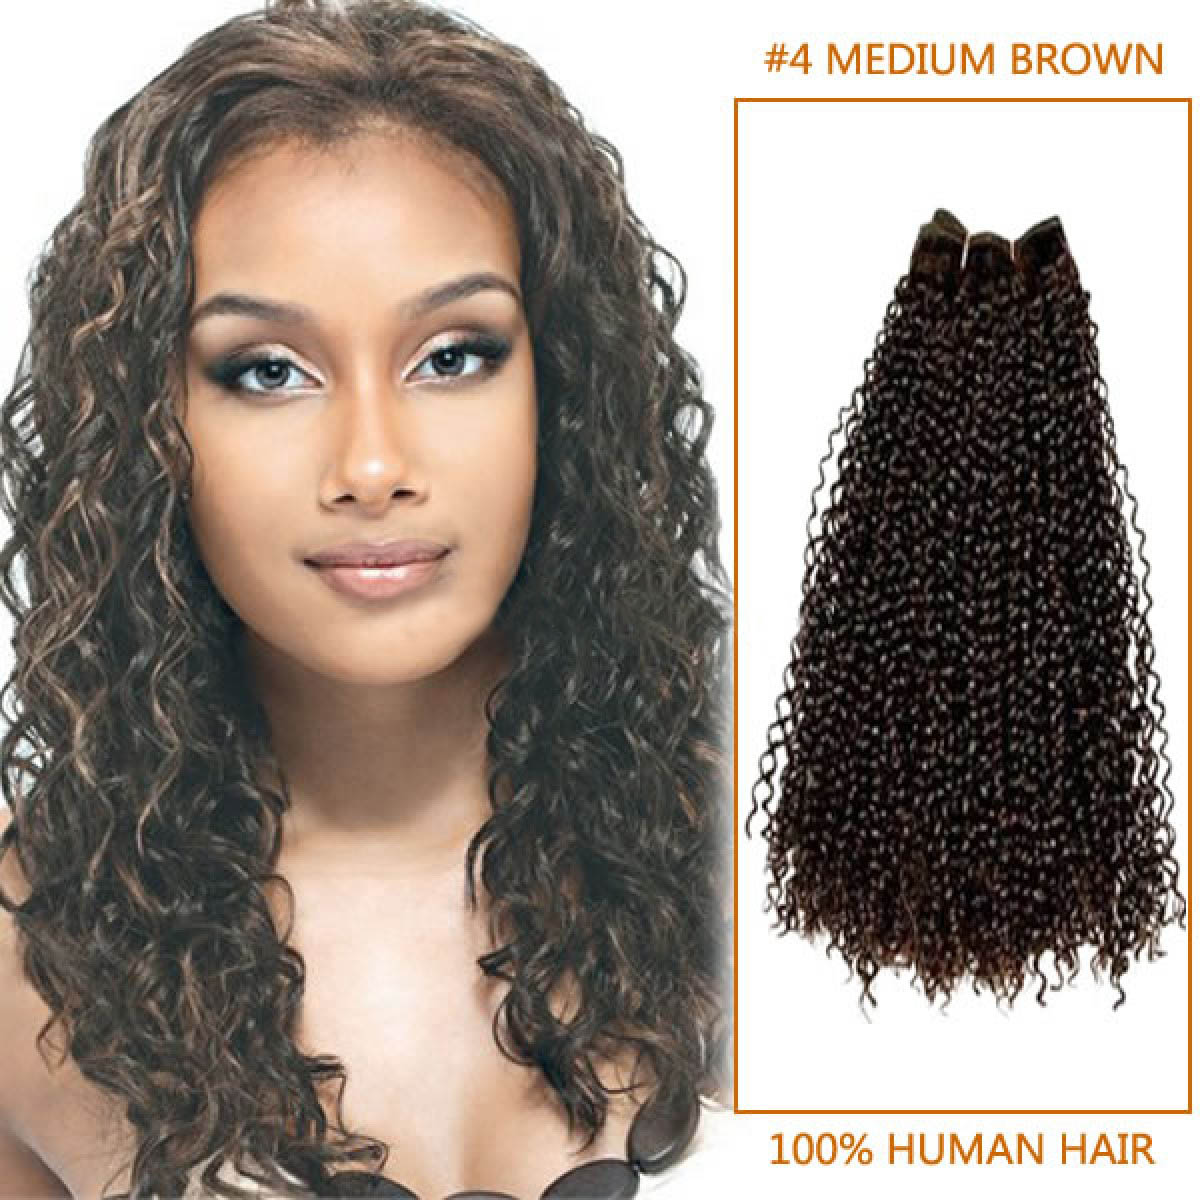 14 Inch 4 Medium Brown Afro Curl Indian Remy Hair Wefts